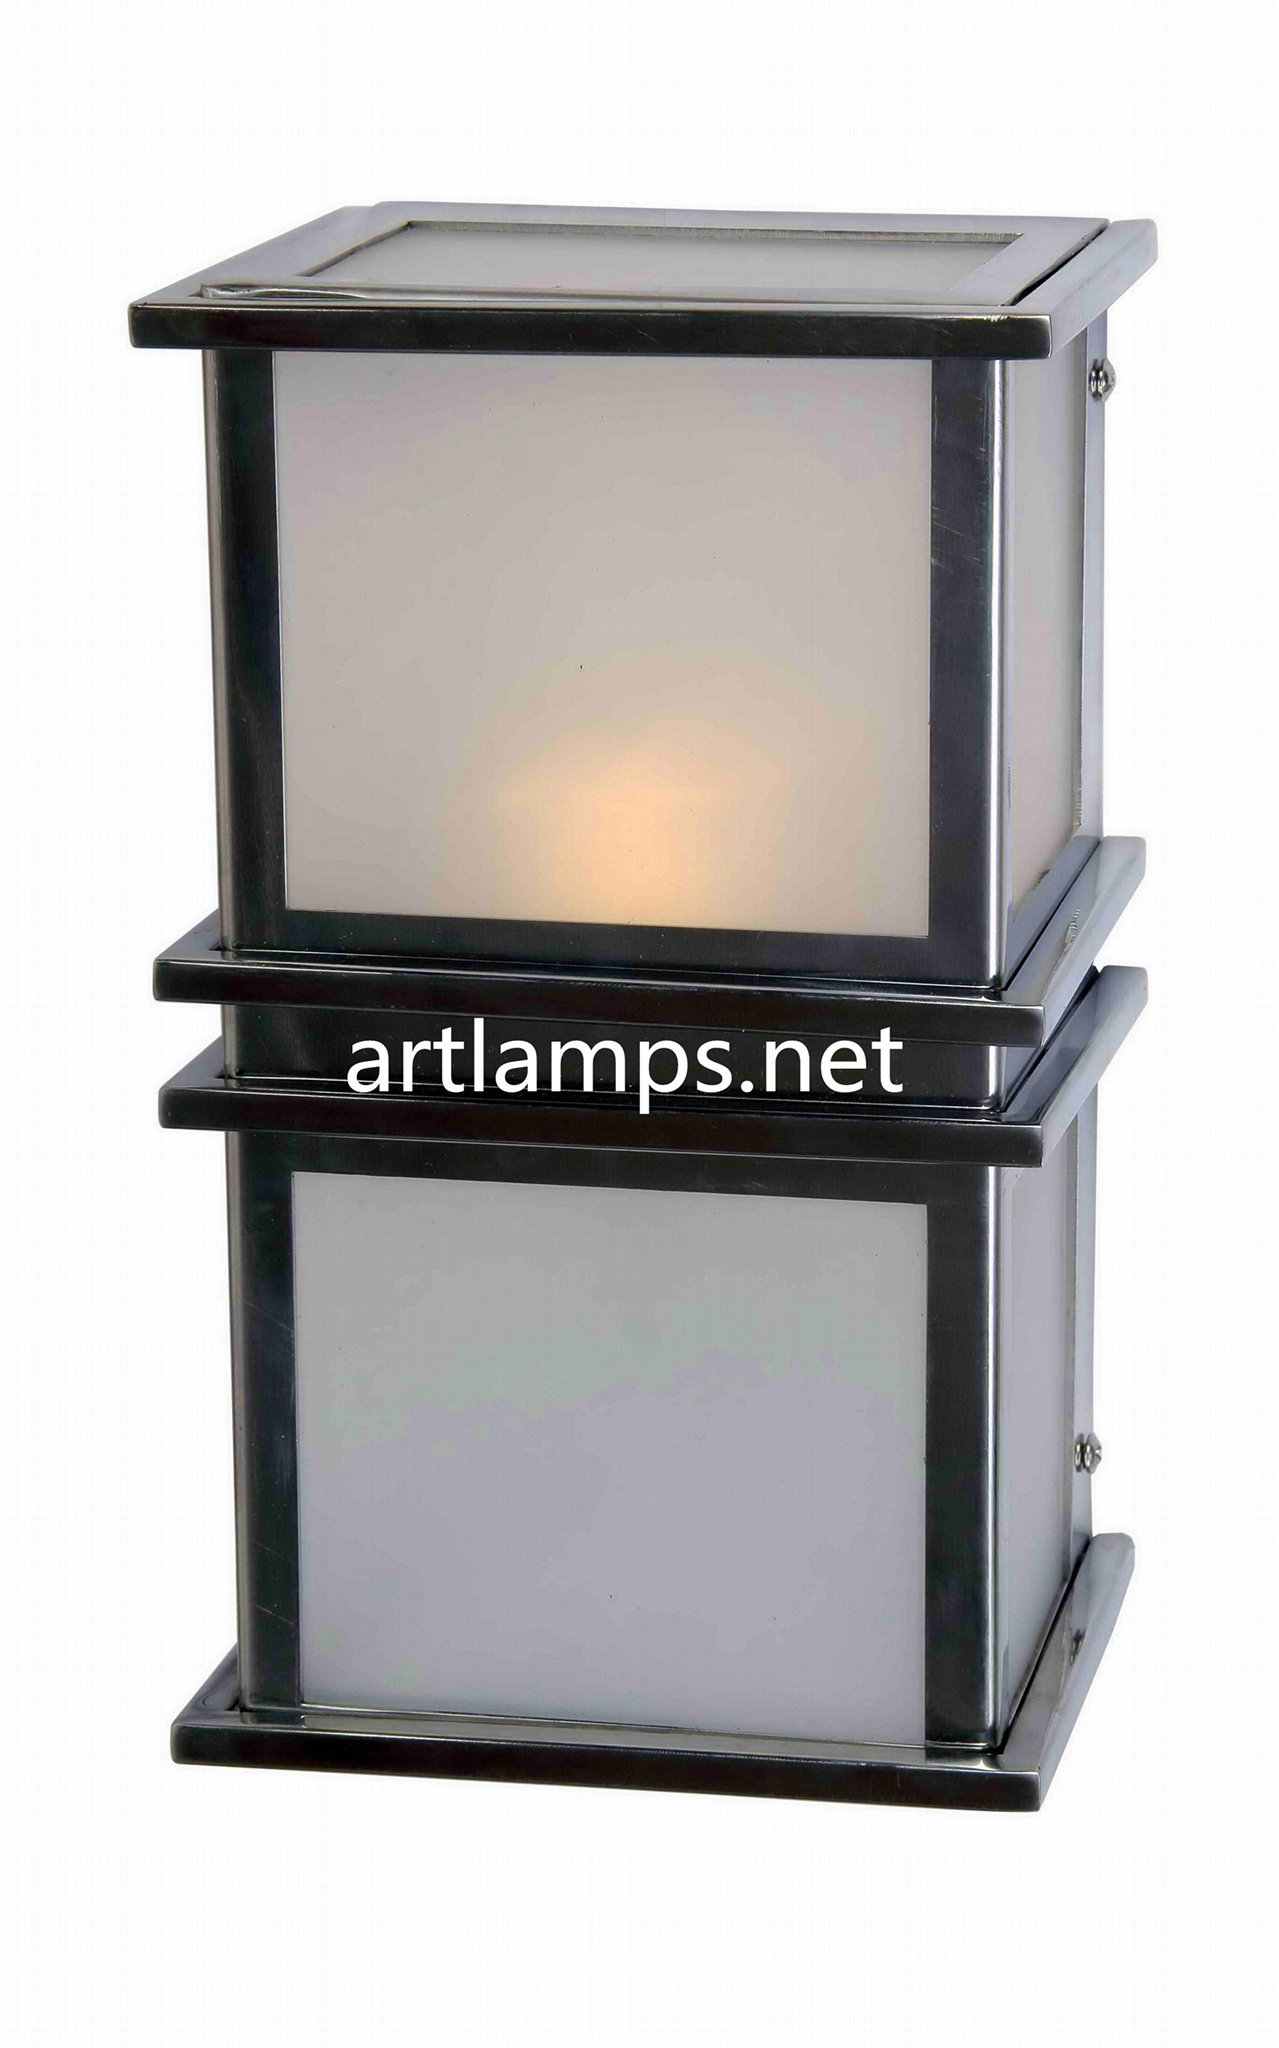 Outdoor LED Wall Sconce LED Waterproof Stainless Steel Wall Sconce FD-HW5009 1